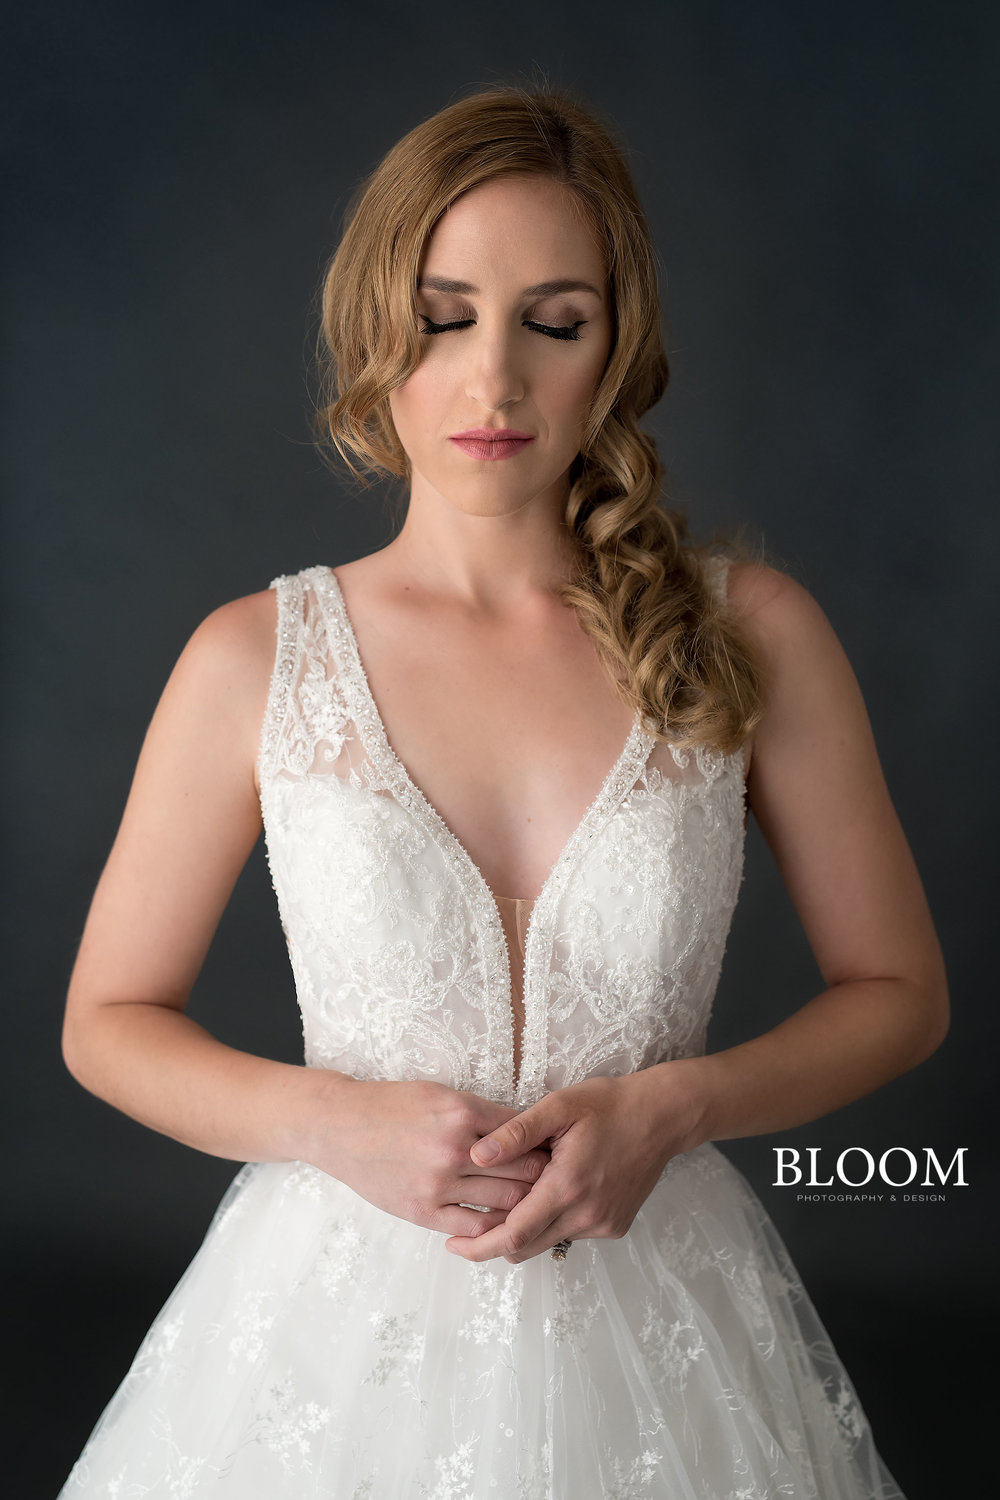 wedding_bridal_san_antonio_photographer_texas_bloom_033017_3913.jpg